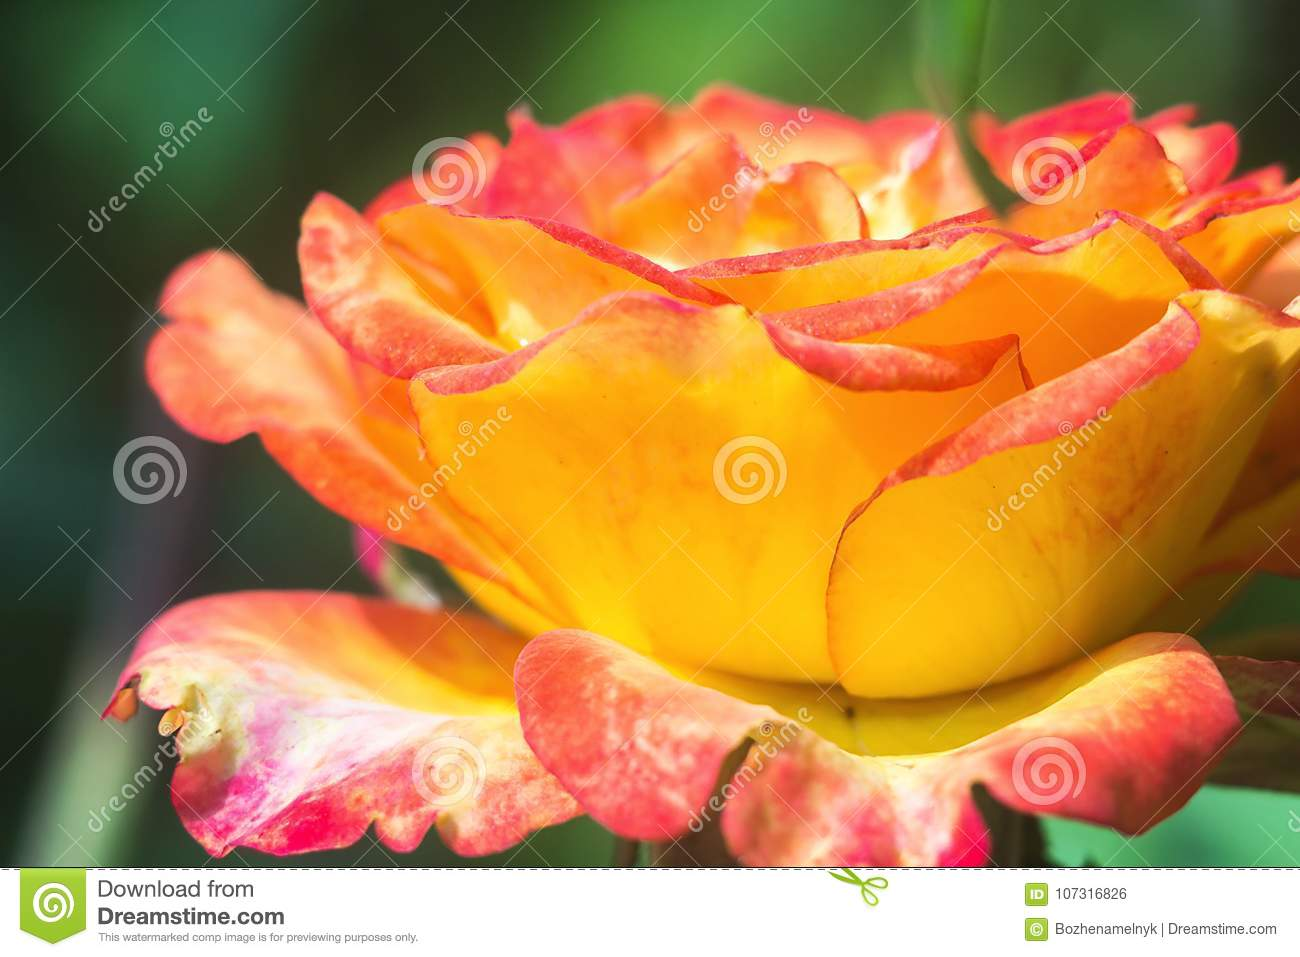 Some Orange Yellow Pink Roses In The Garden Against Green Background